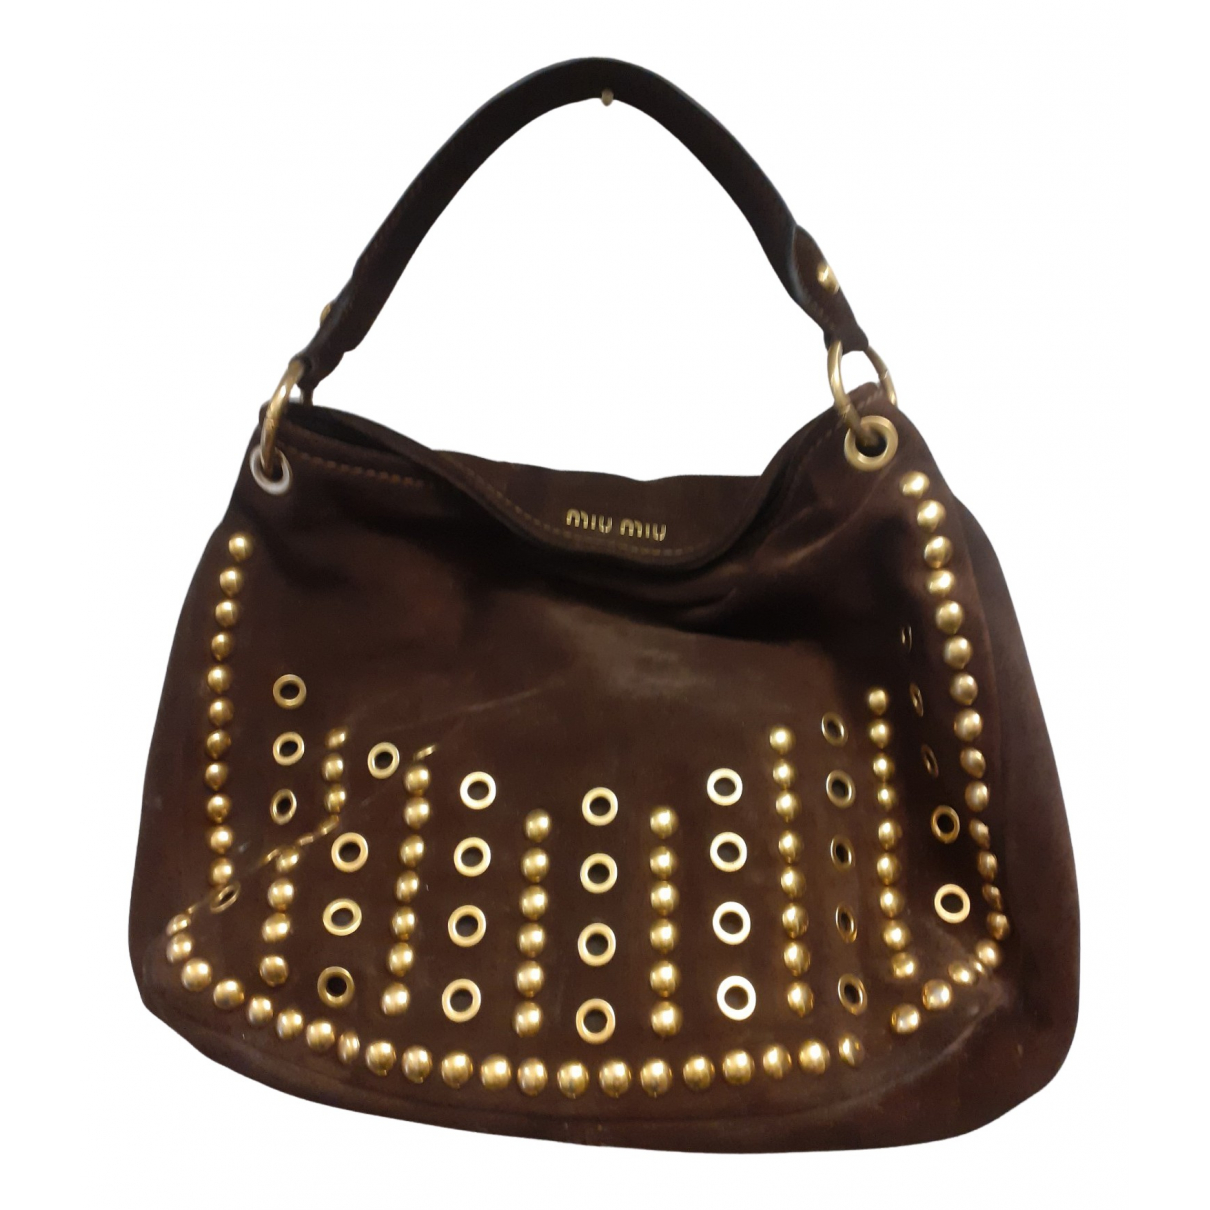 Miu Miu N Brown Suede handbag for Women N